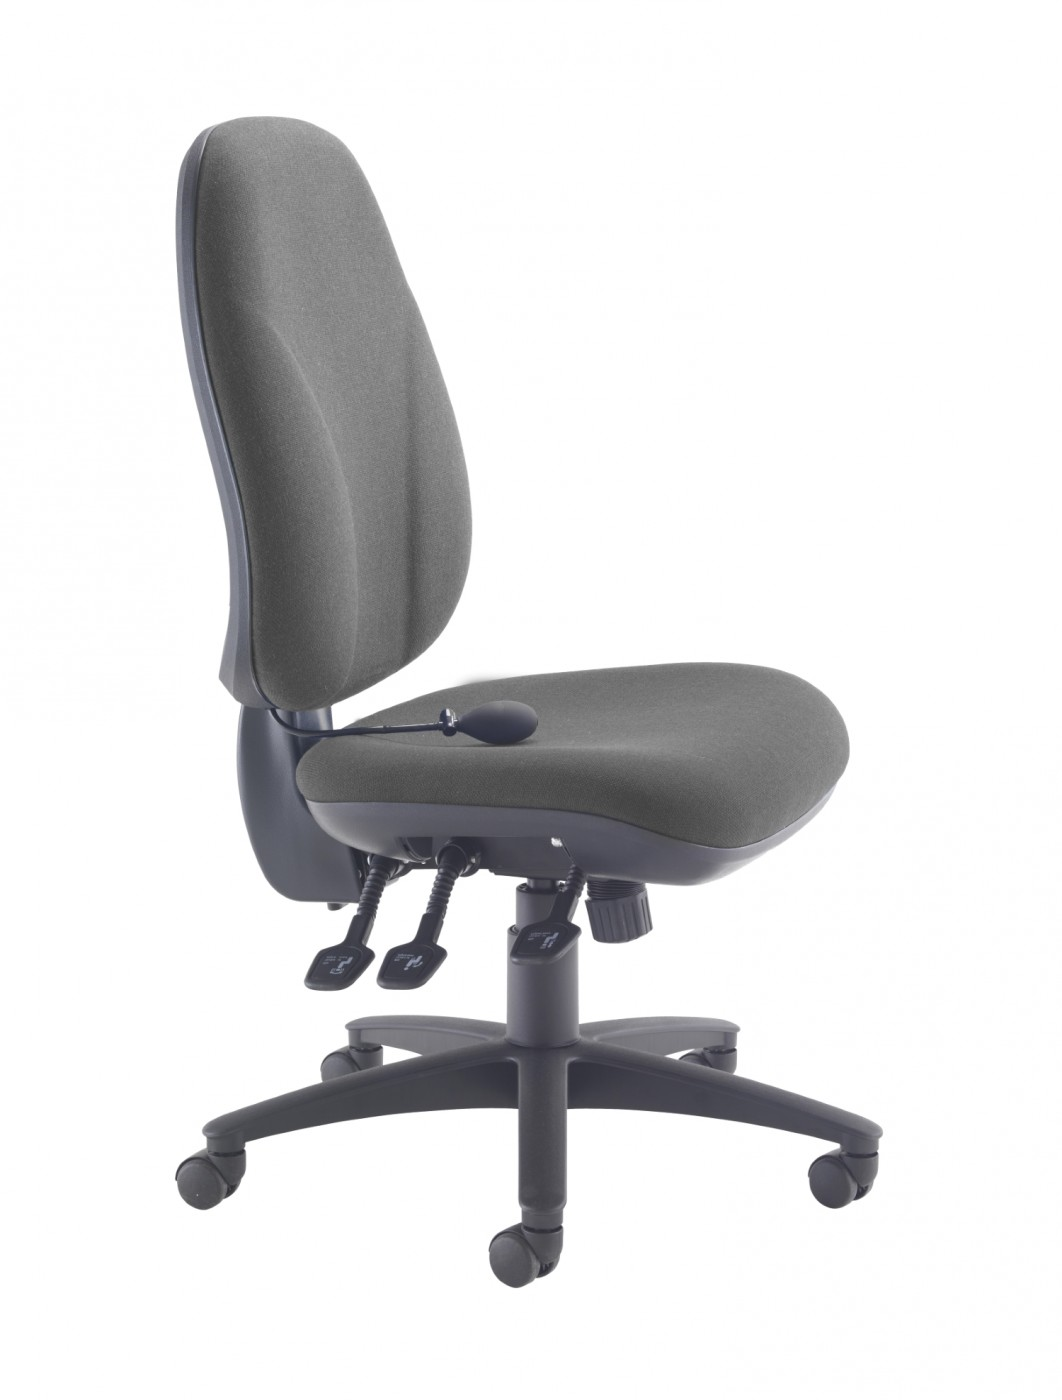 Ergo Chair Tc Office Concept Maxi Ergo Office Chair Ch0808 In